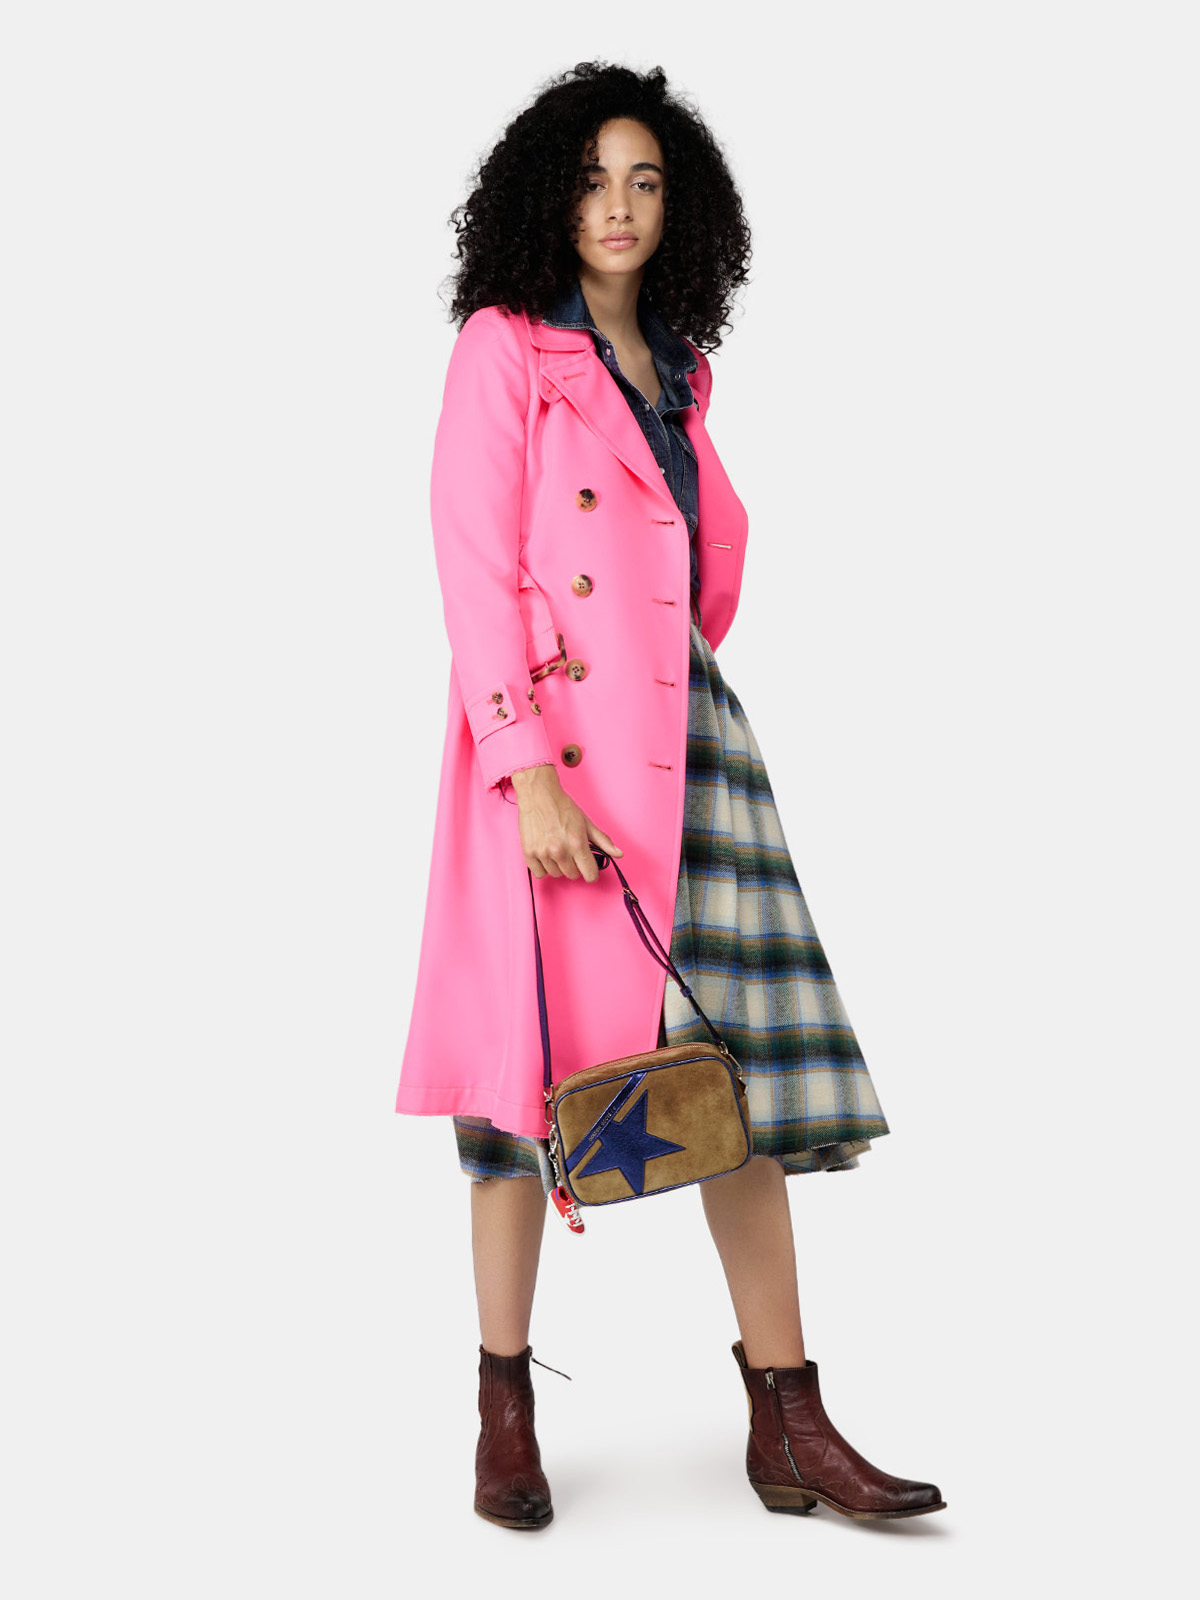 Golden Goose - Adele skirt in flannel with checked pattern in